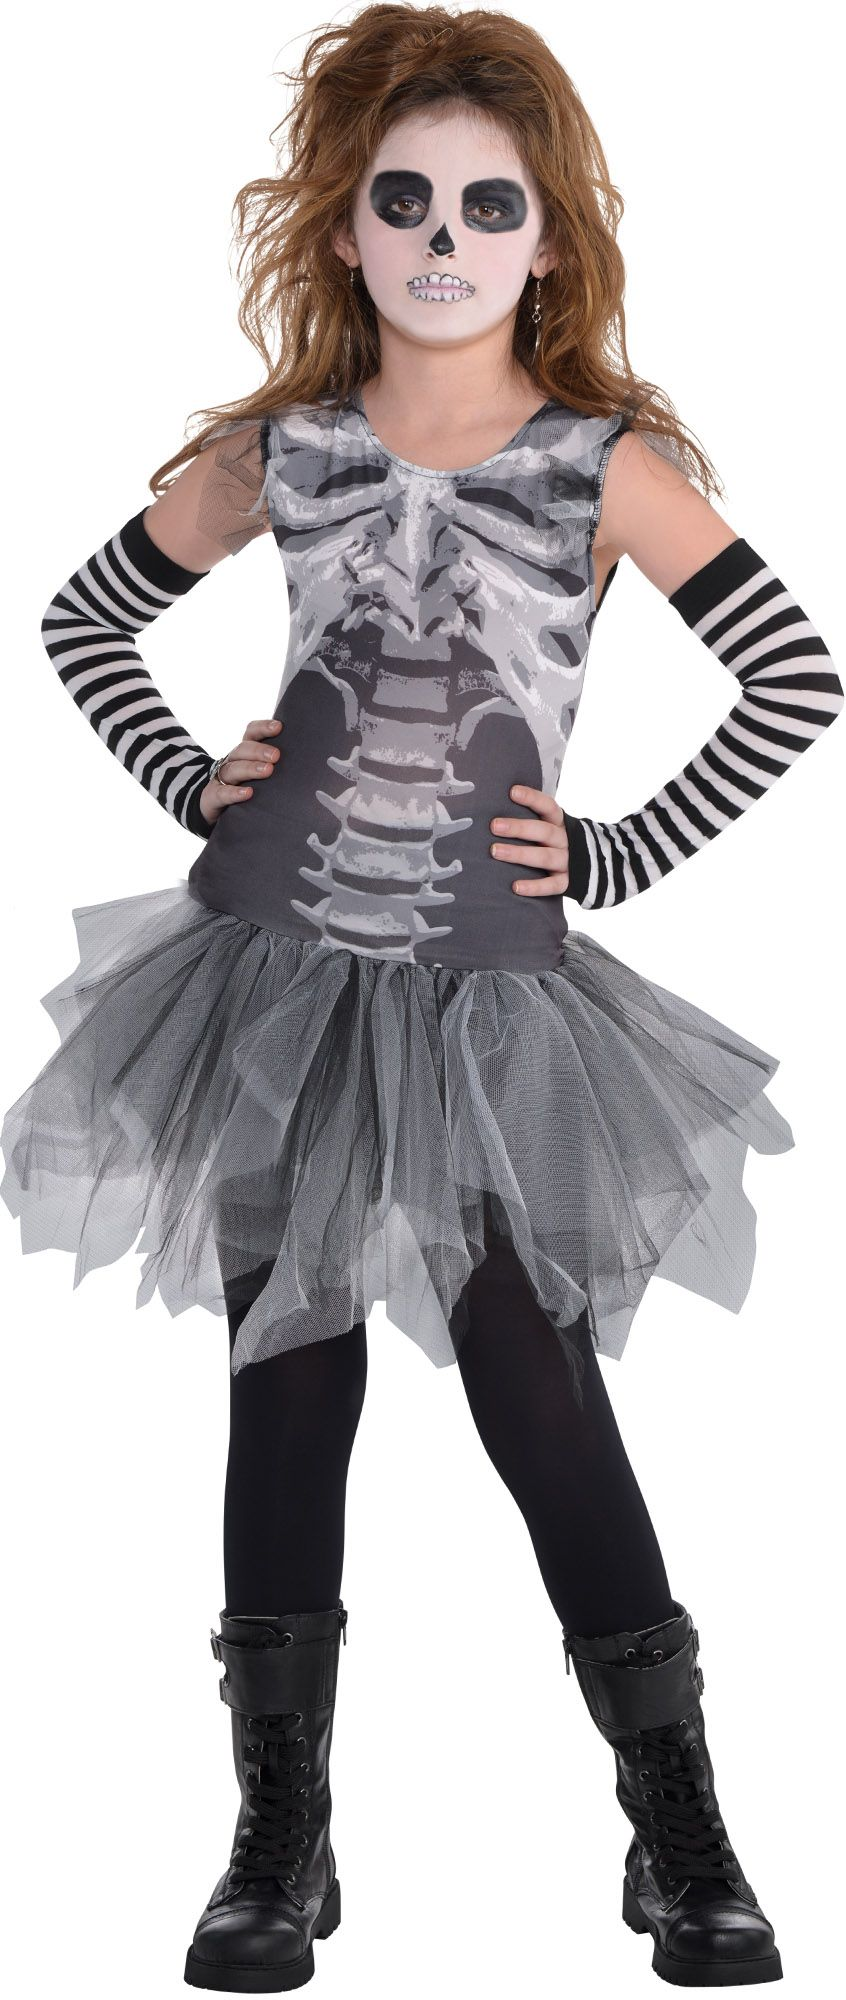 Create Your Own Girls' Skeleton Costume Accessories | Party City ...